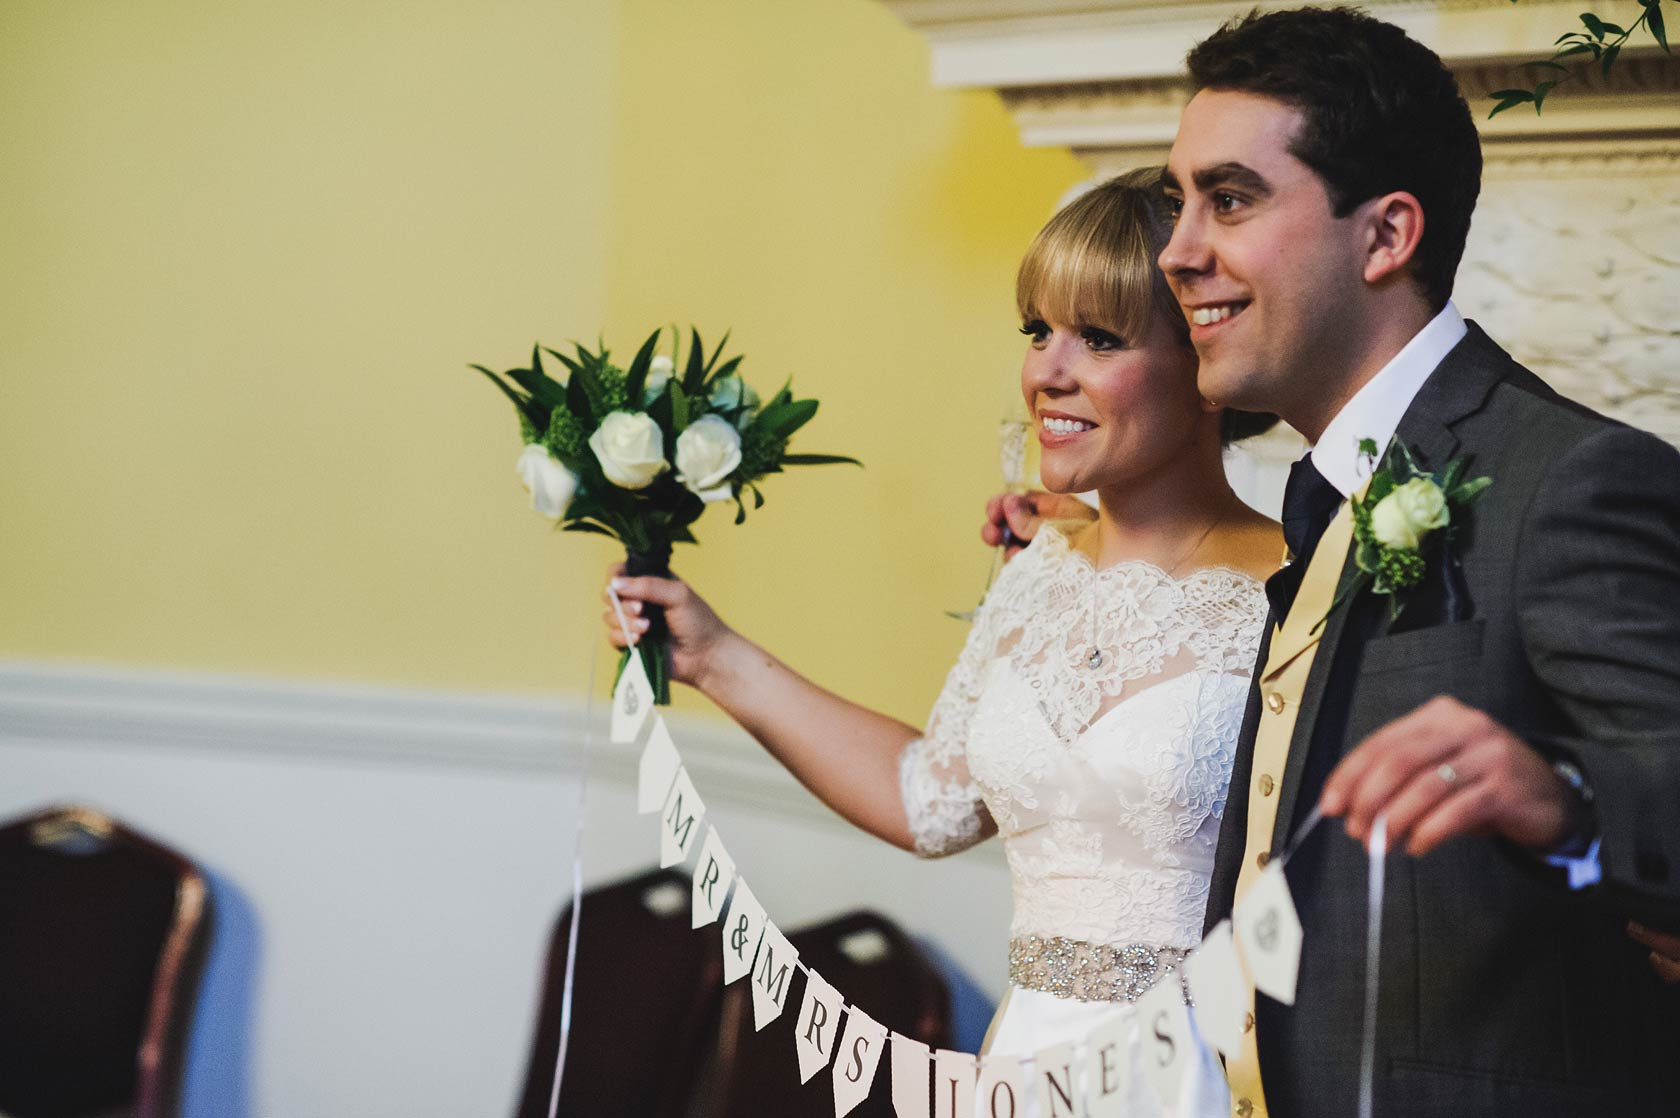 Reportage Wedding Photography at Assembly Rooms Bath